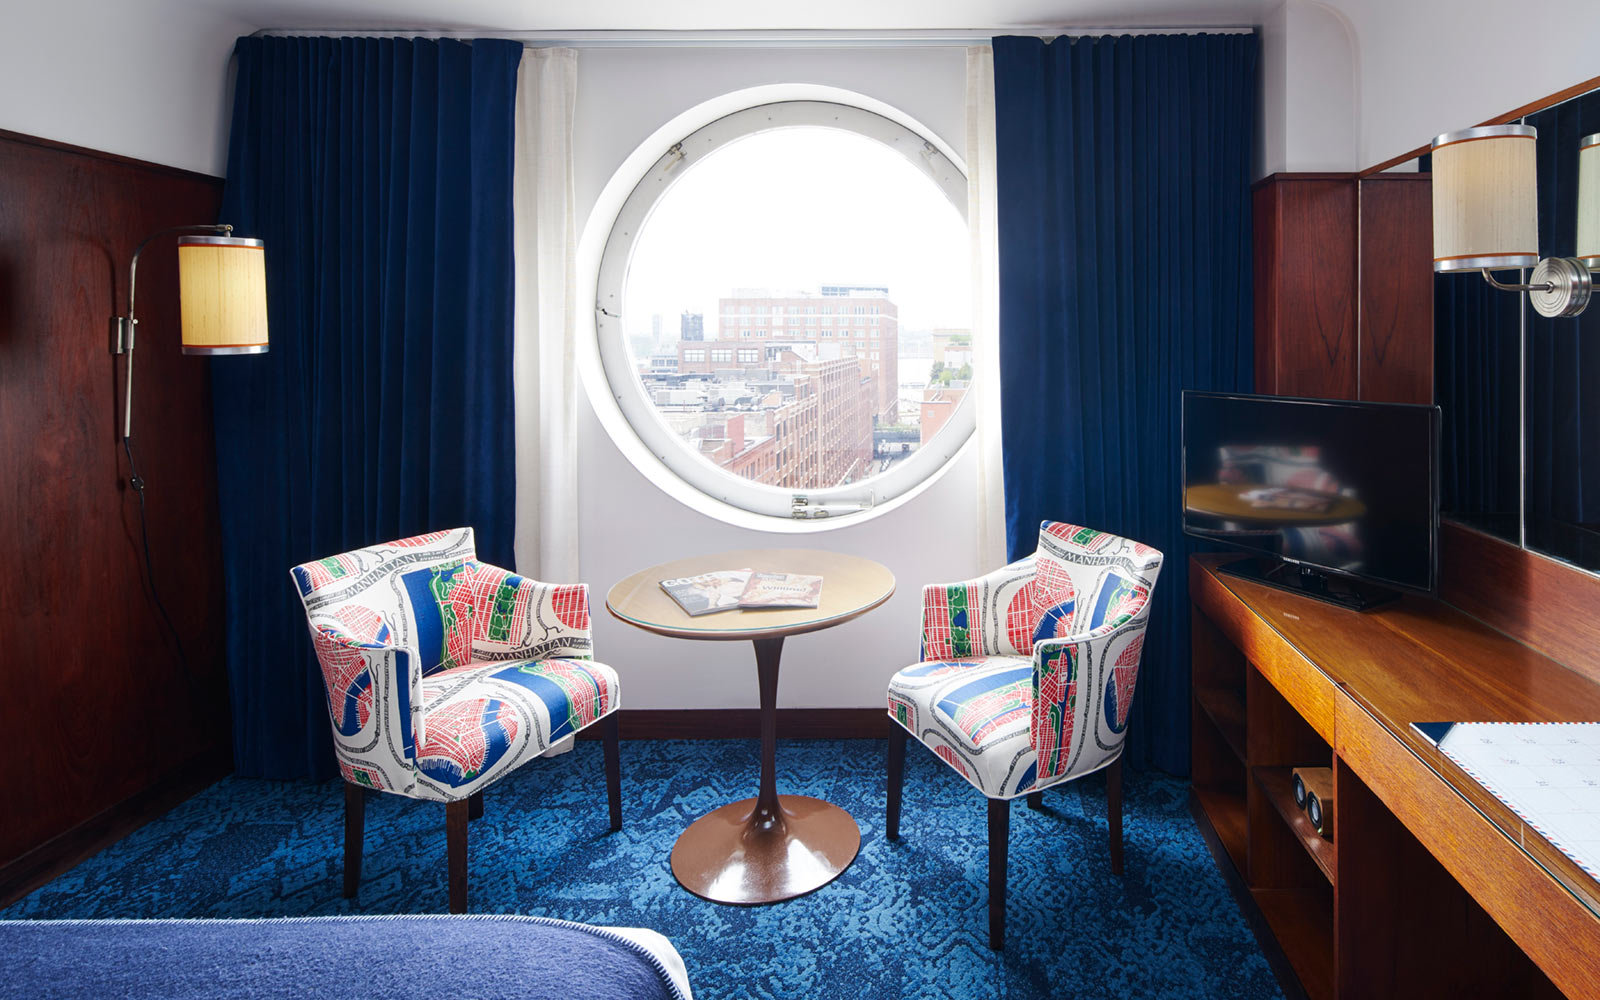 The Maritime Hotel, New York City